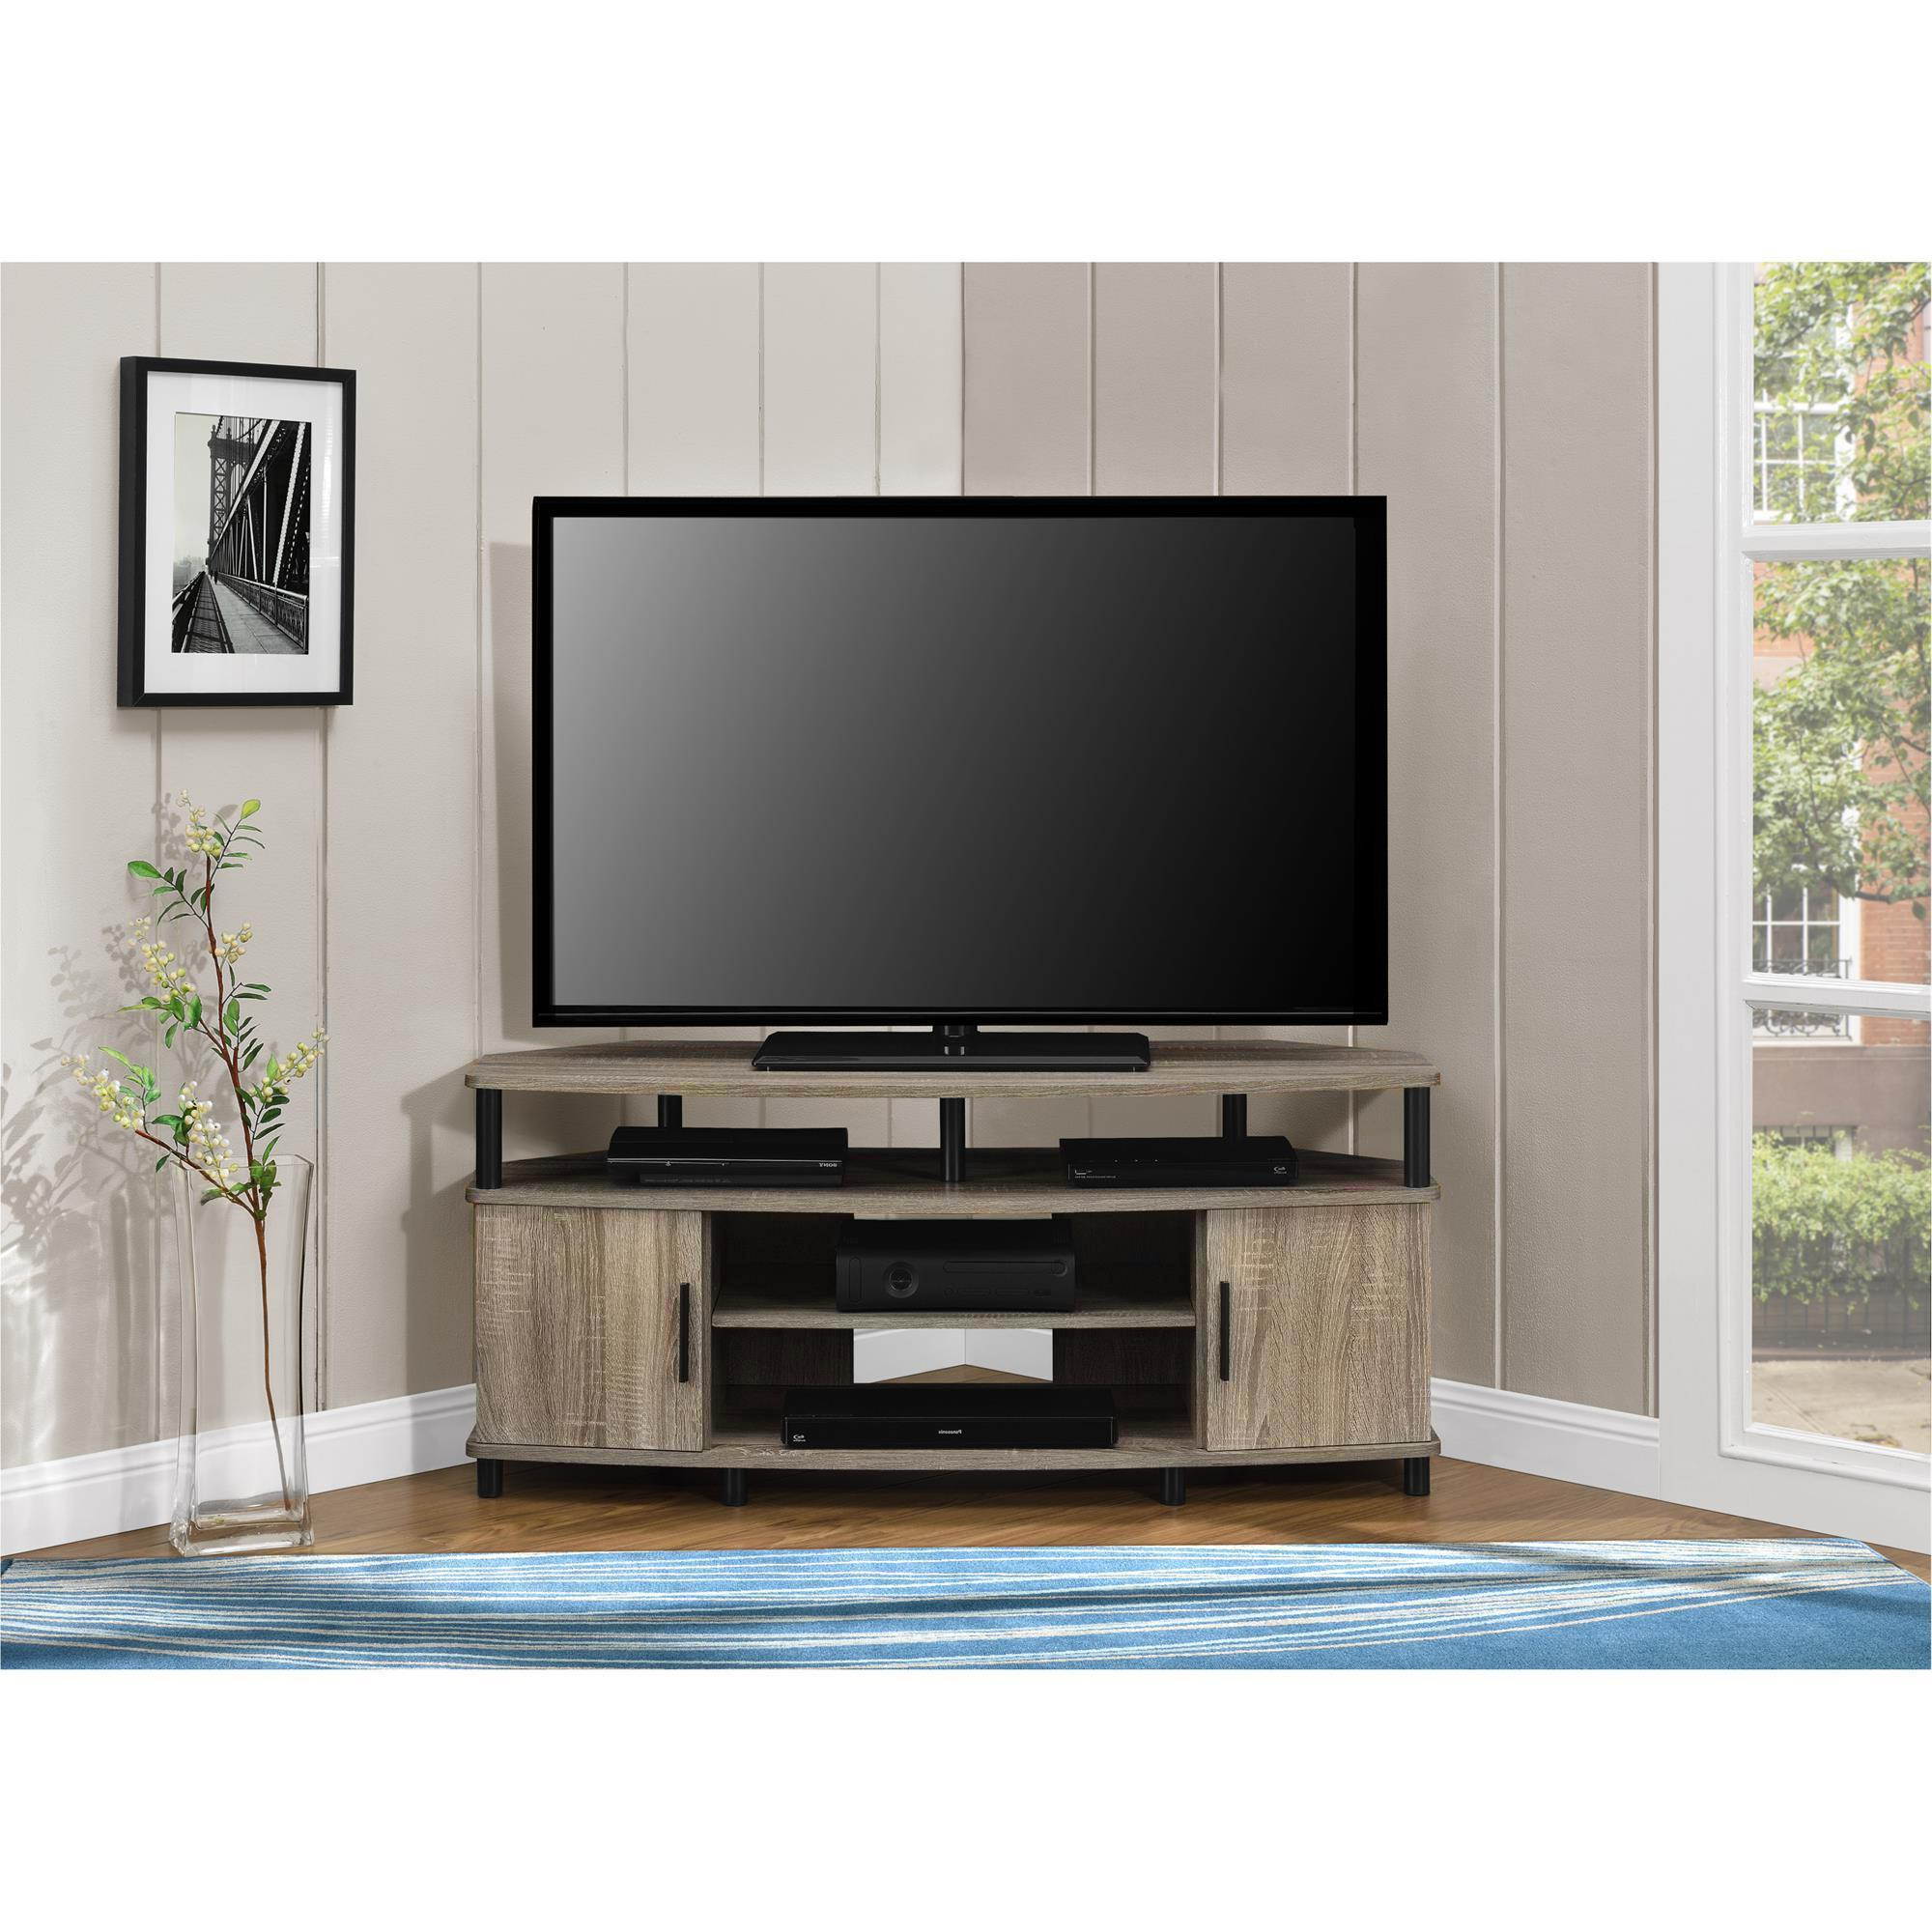 2018 Shop Ameriwood Home Carson 50 Inch Sonoma Oak Corner Tv Stand – Free Regarding Compact Corner Tv Stands (View 13 of 20)